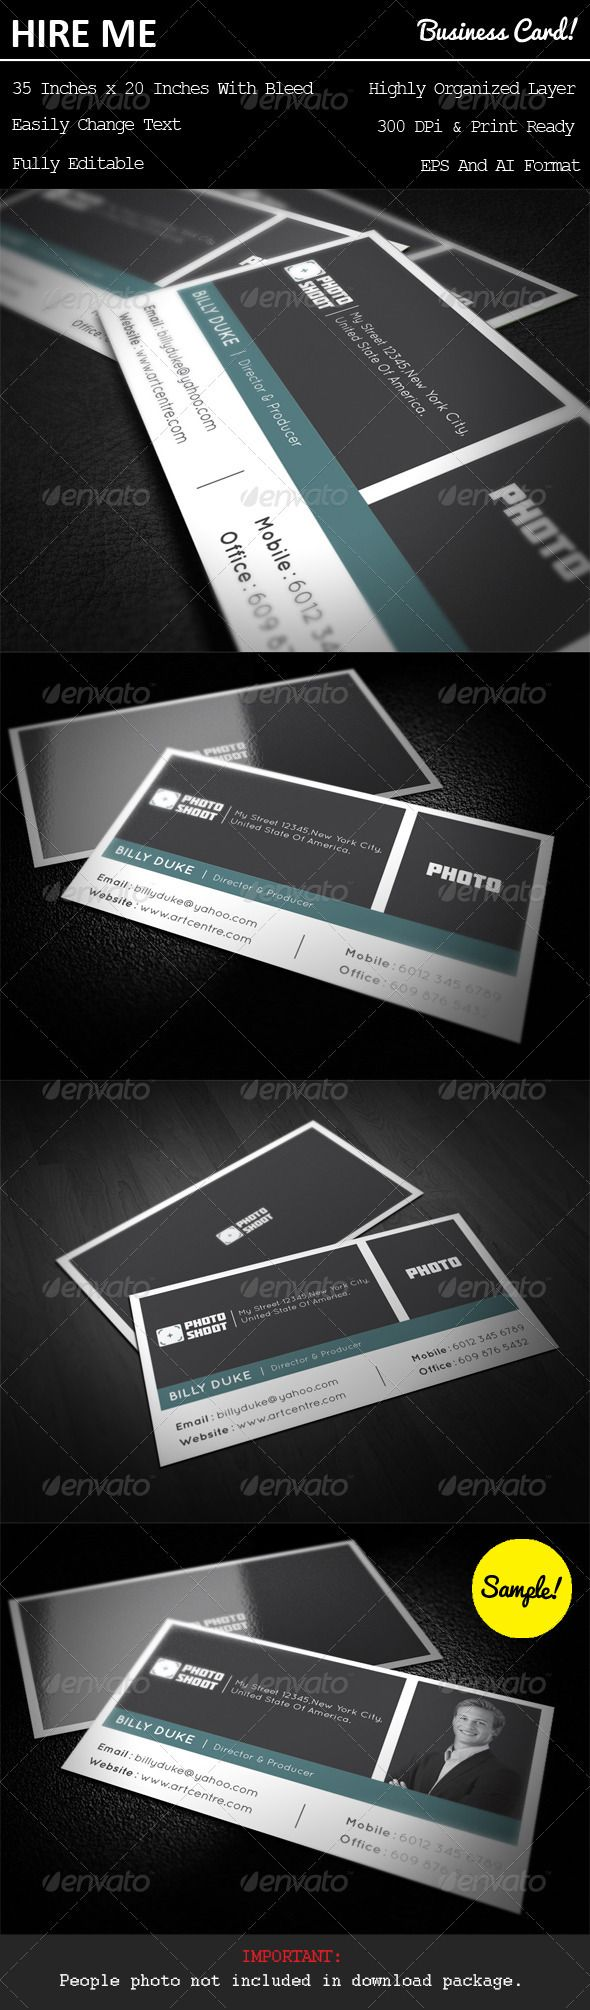 Photo Shoot Business Card   Business cards, Photo shoots and Business